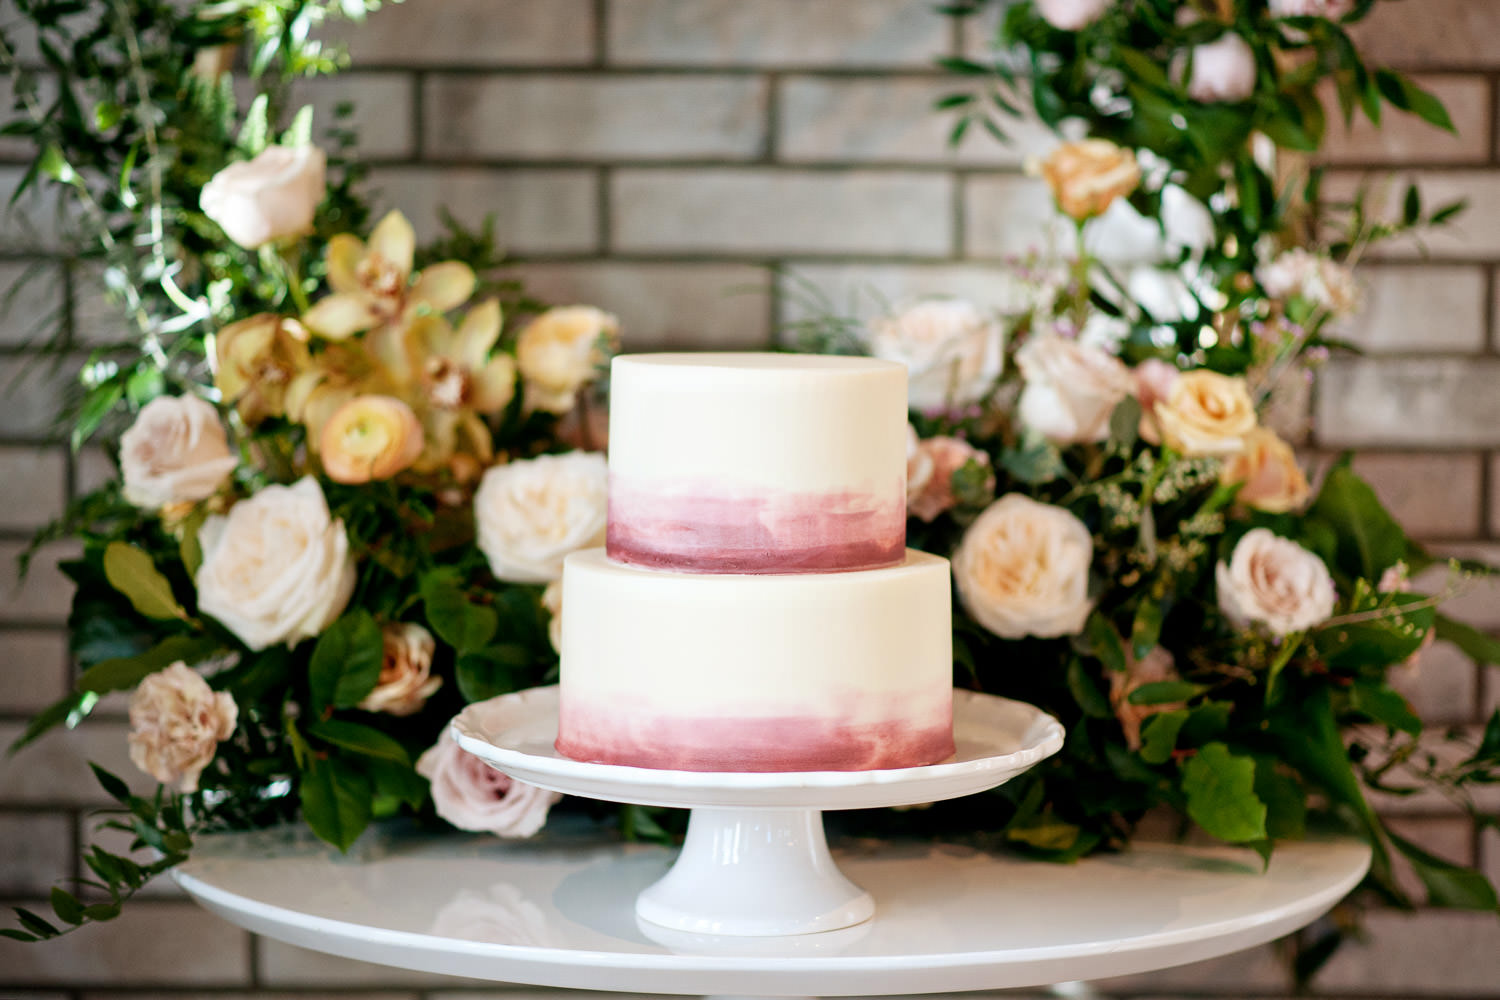 Watercolor wedding cake from Crave captured by Tara Whittaker Photography